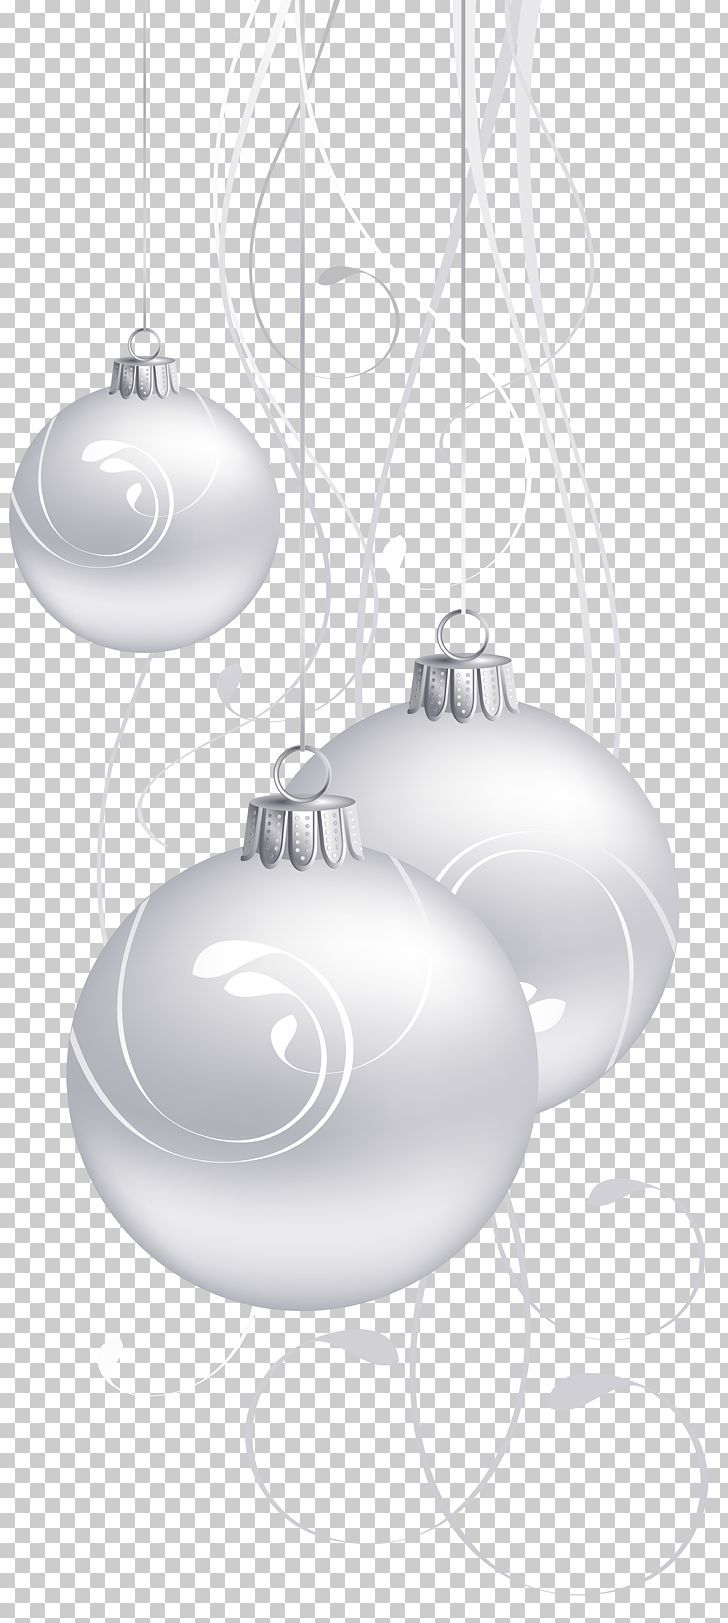 Black And White Purple Png Animation Christmas Christmas Balls Christmas Clipart Clipart Purple Christmas Balls Black And White